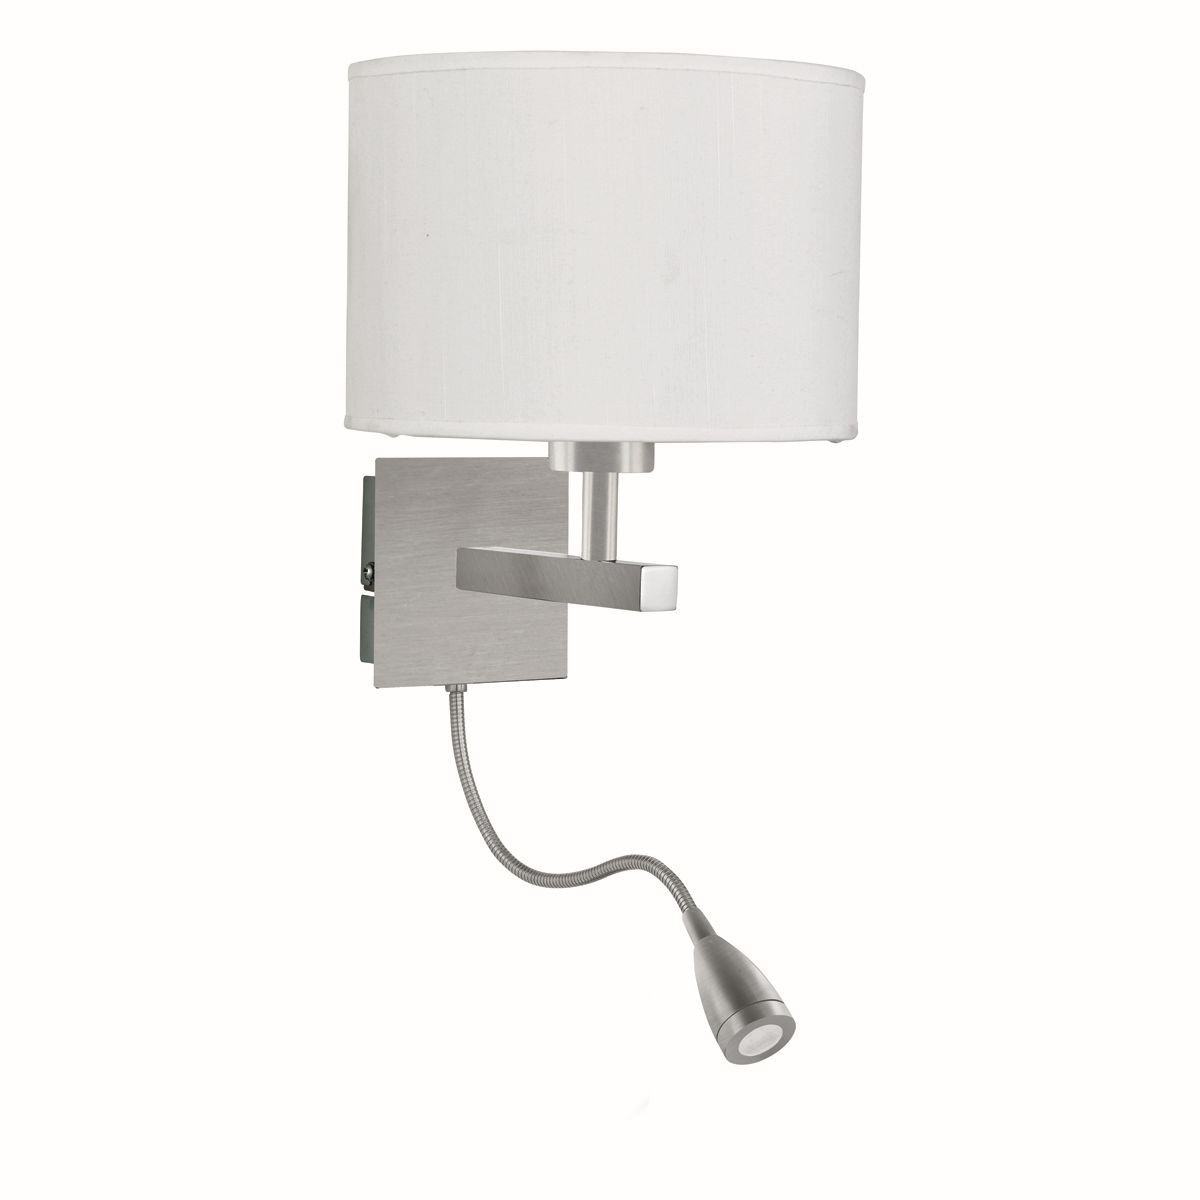 Flexible LED Dual Arm Wall Light (Switched) - Satin Silver, Complete with Shade